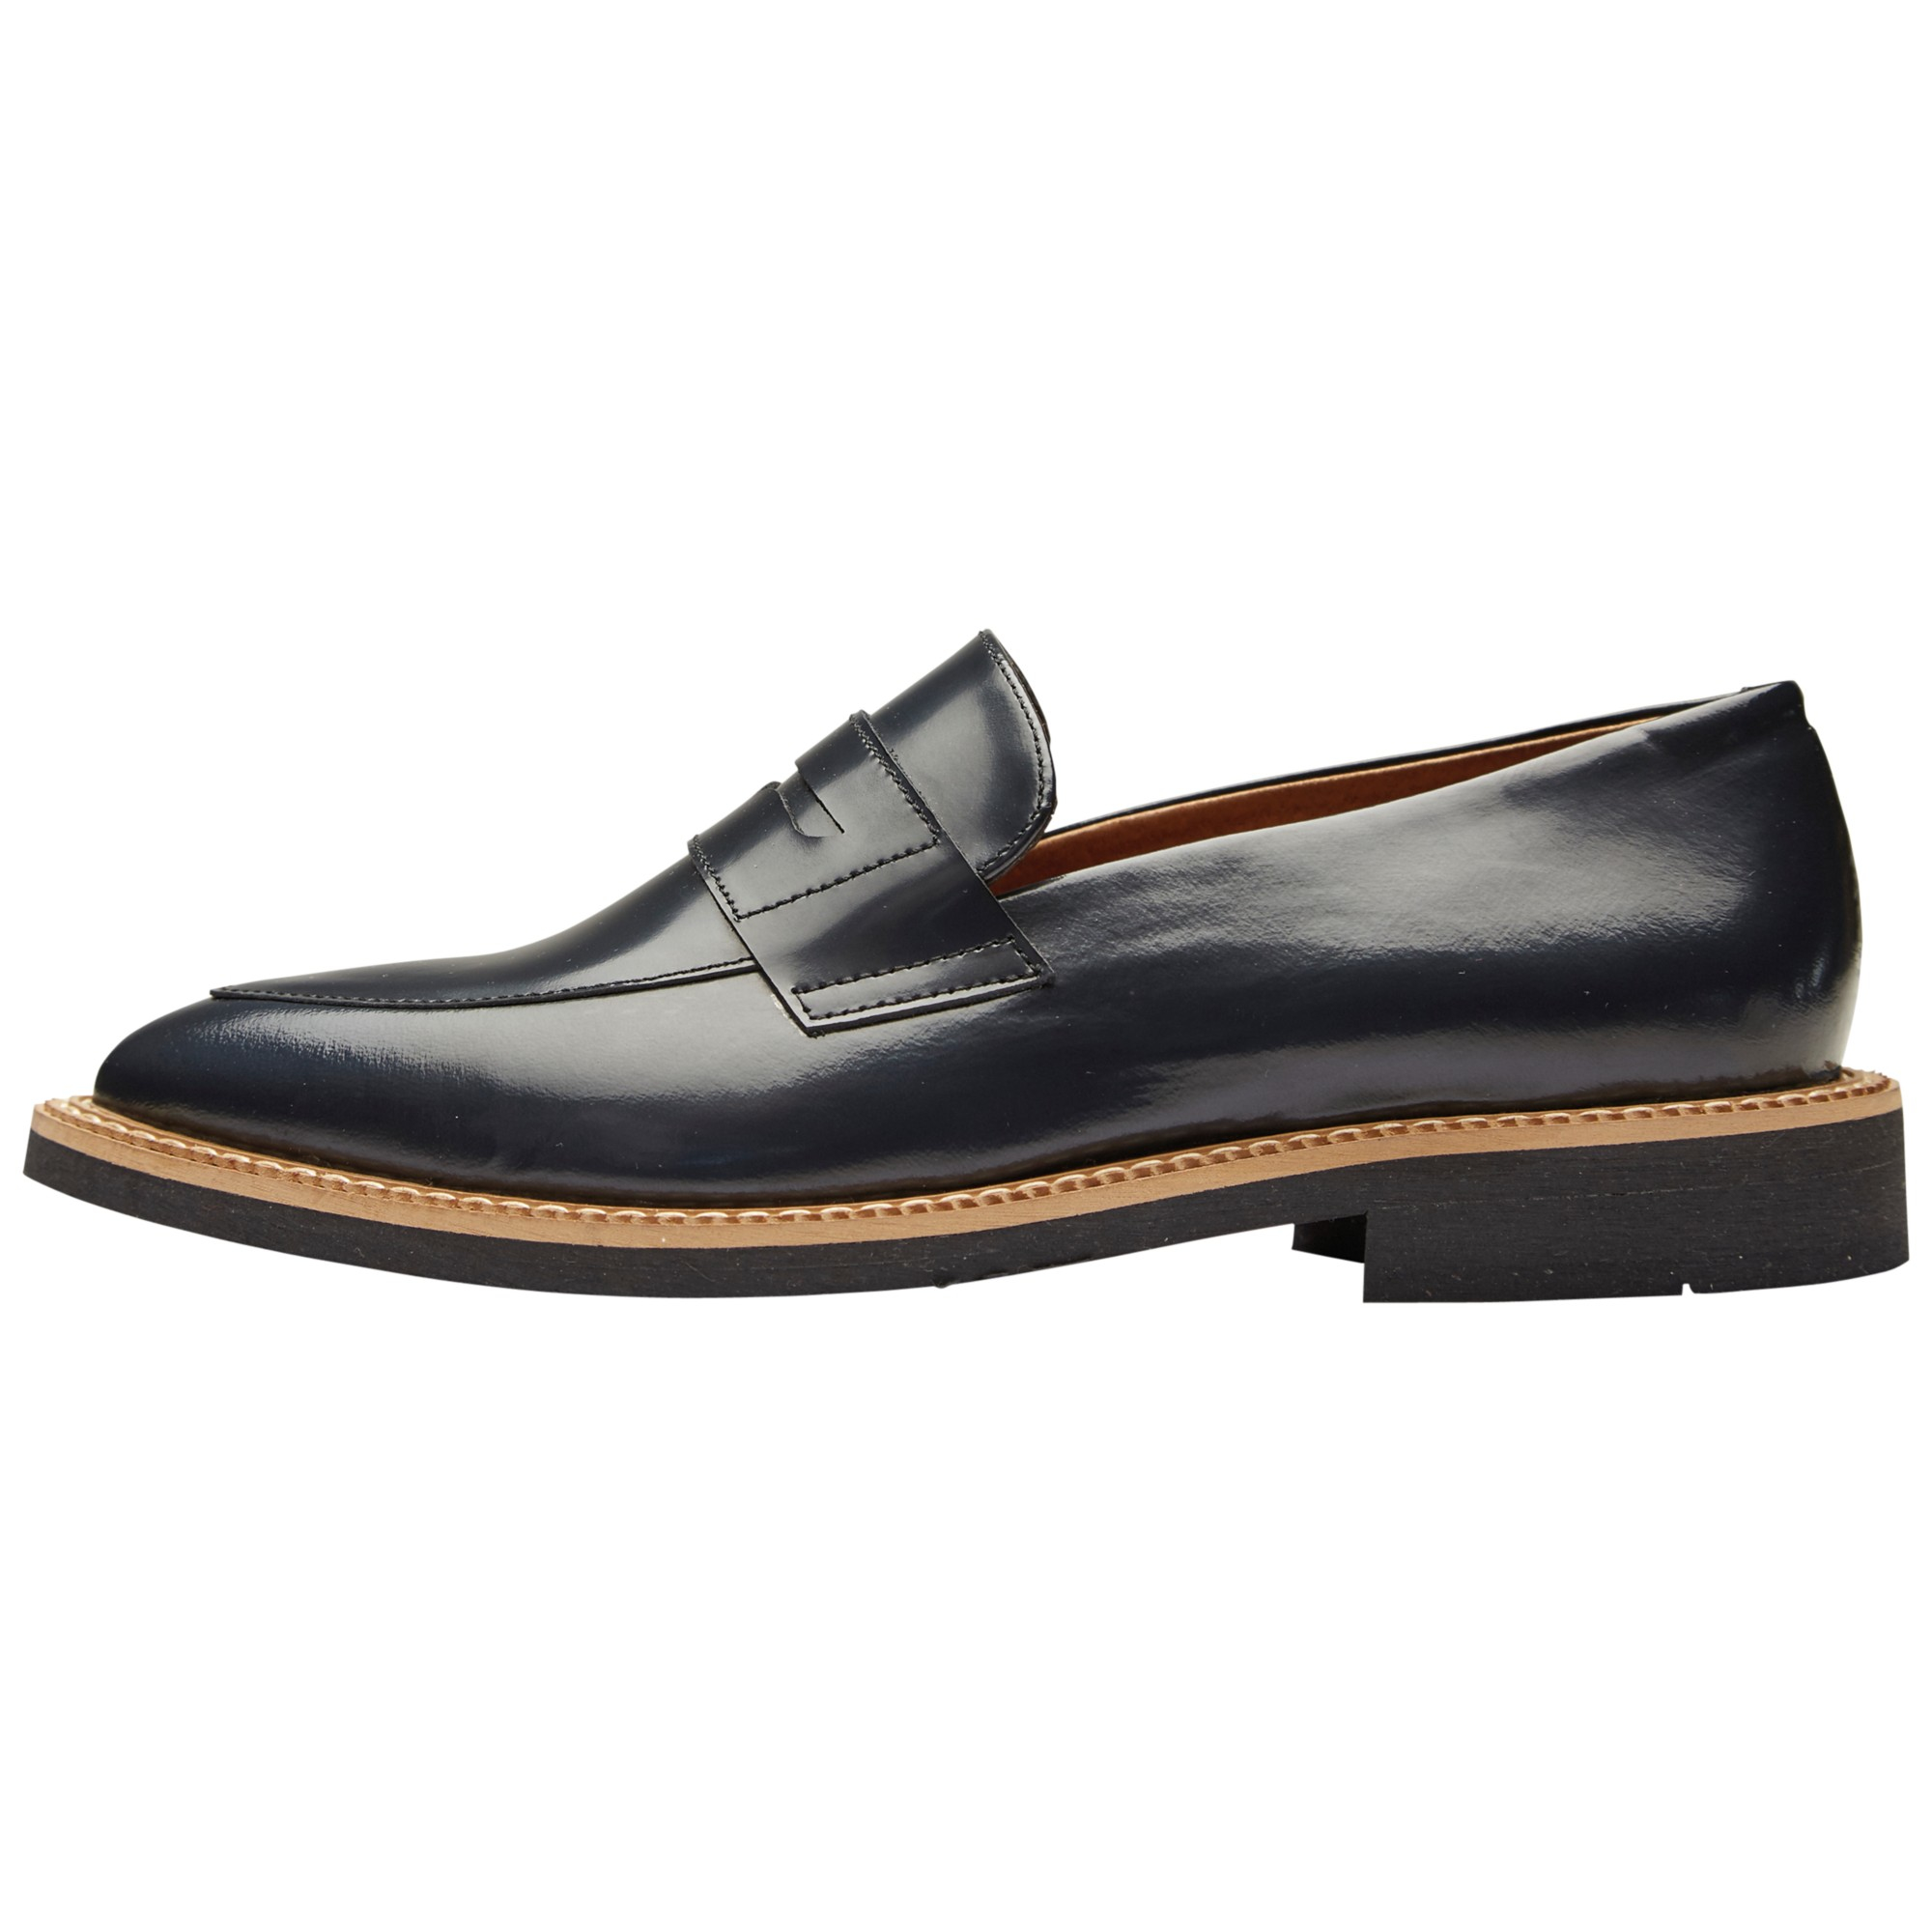 Leather Loafer - Black Selected Footlocker Pictures For Sale Cheap Price Buy Discount Deals Sale Online Aaa Quality 7p7WM4Fiw